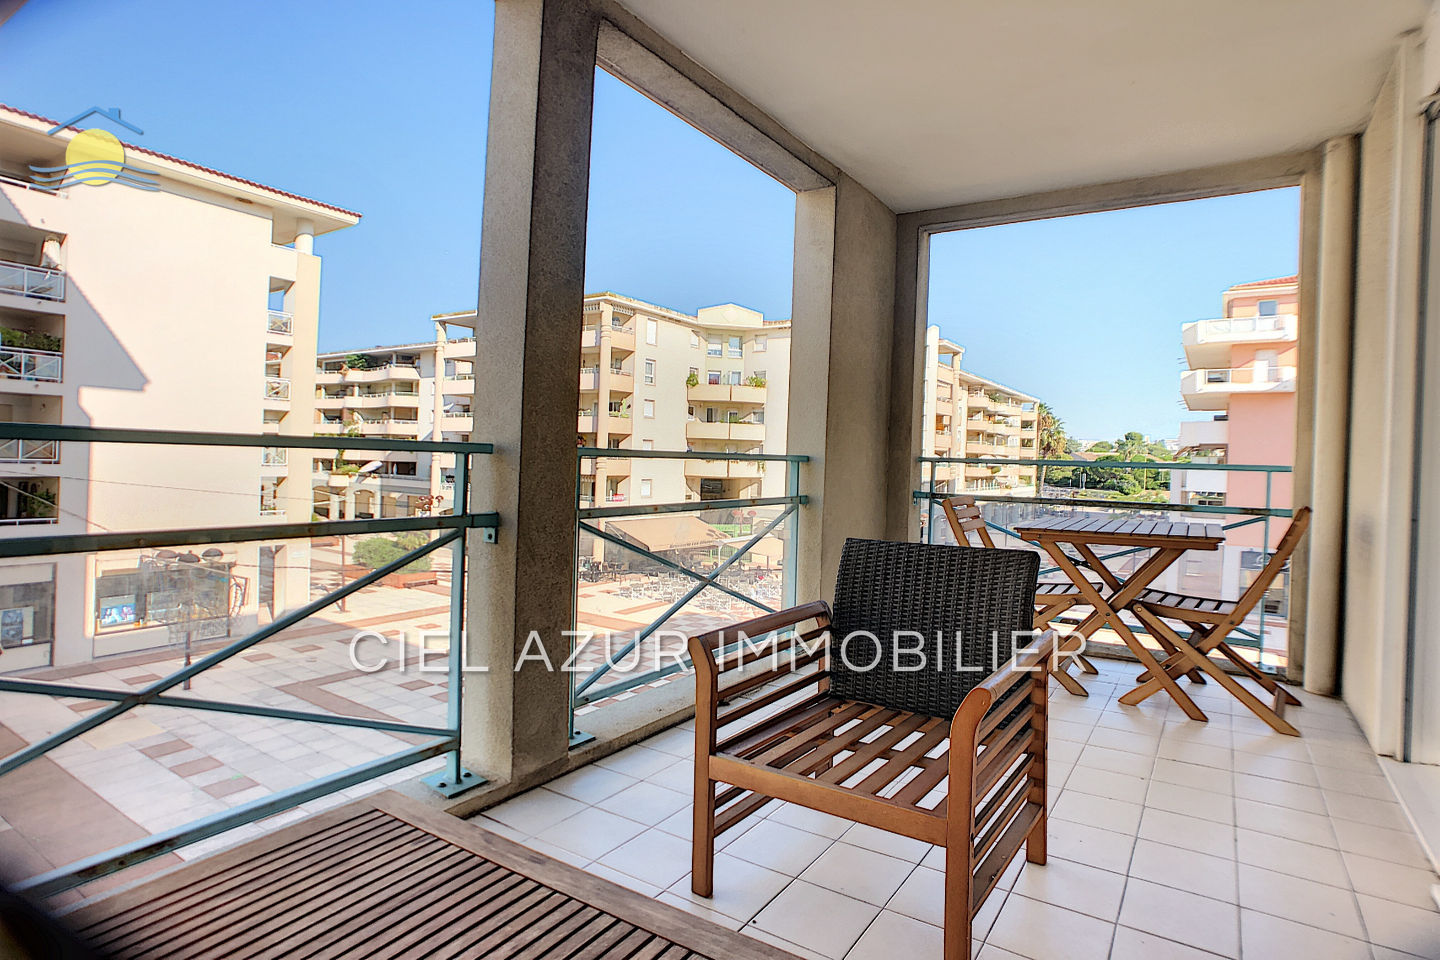 Vente Appartement Antibes Vente Appartement Antibes 06600 150 000 Twimmo